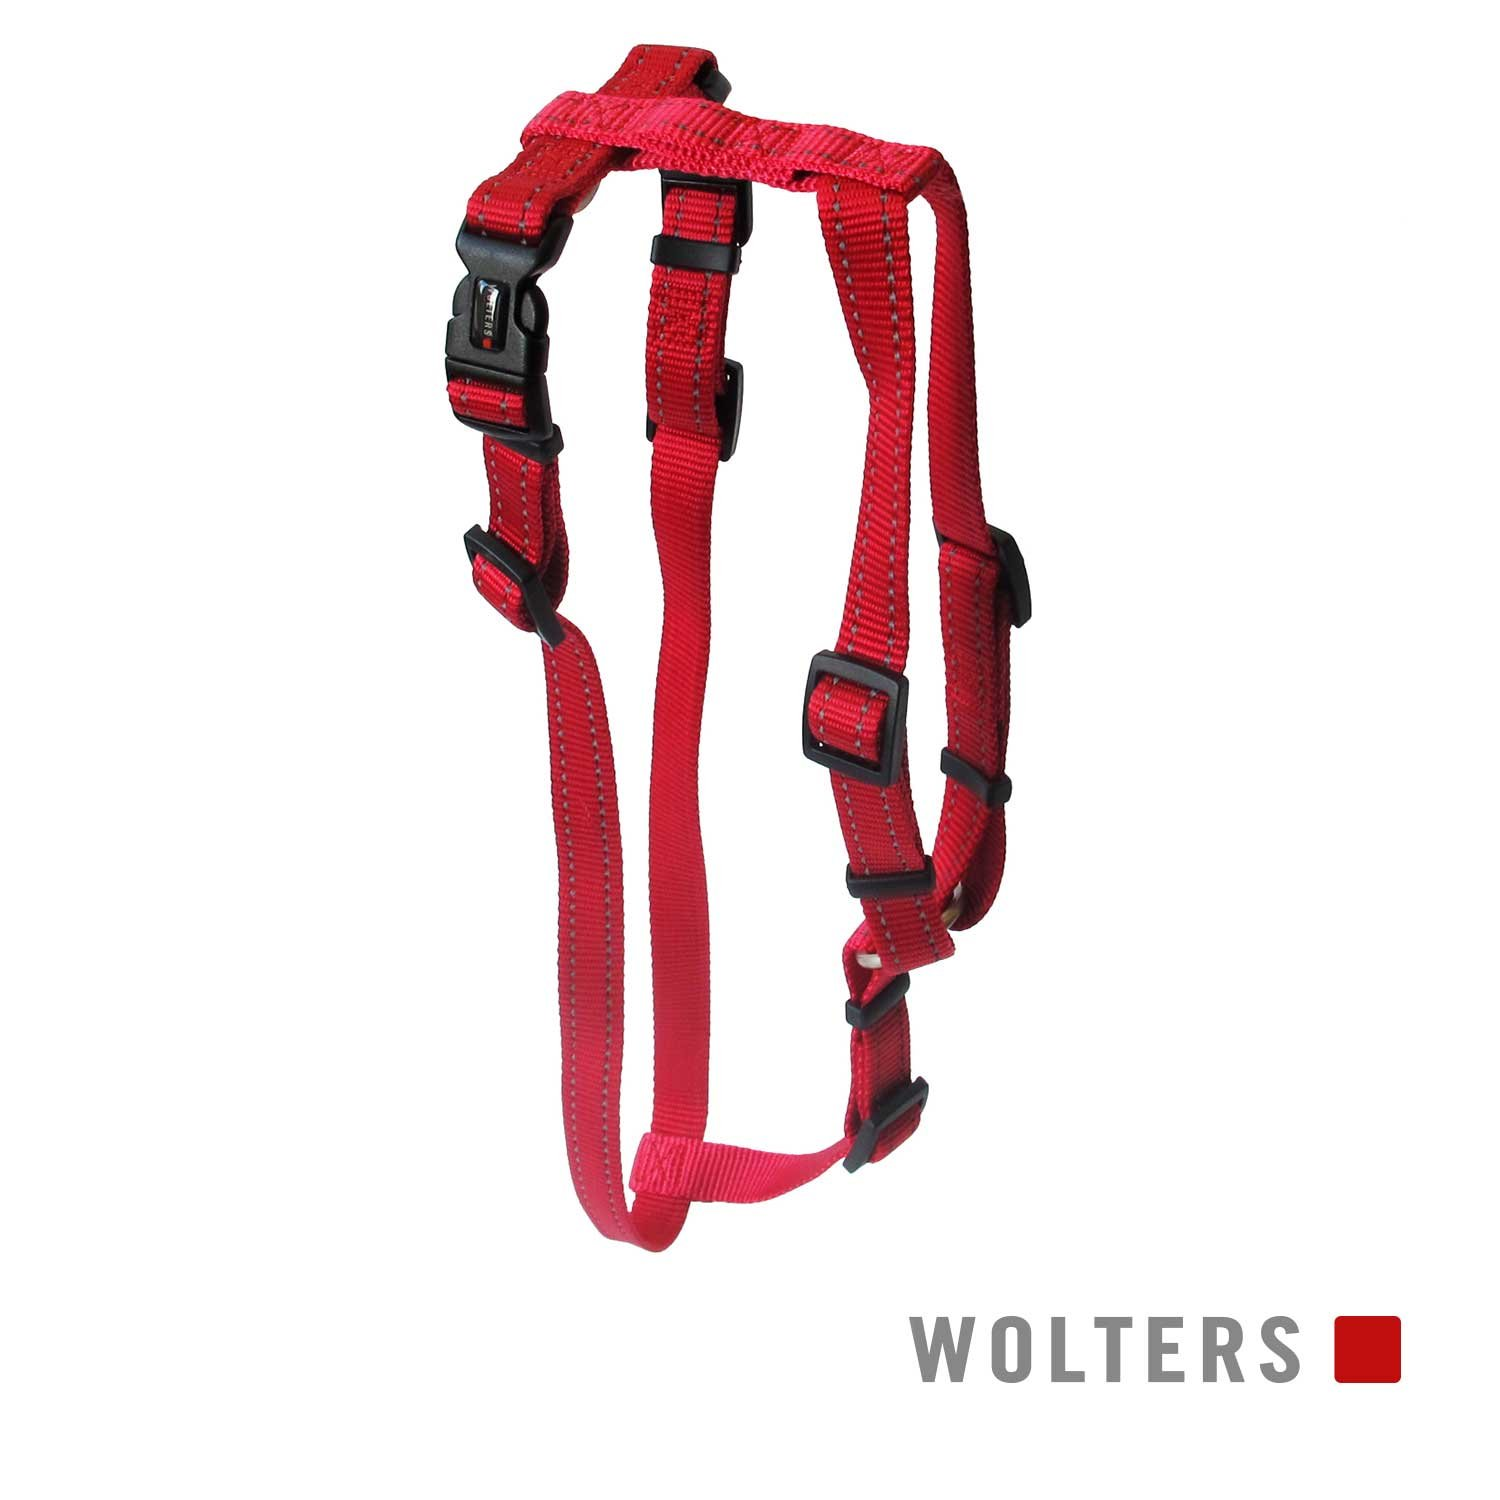 wolters | Soft & Safe para Carlino & Co. Cayenne, 55 - 80 cm ...